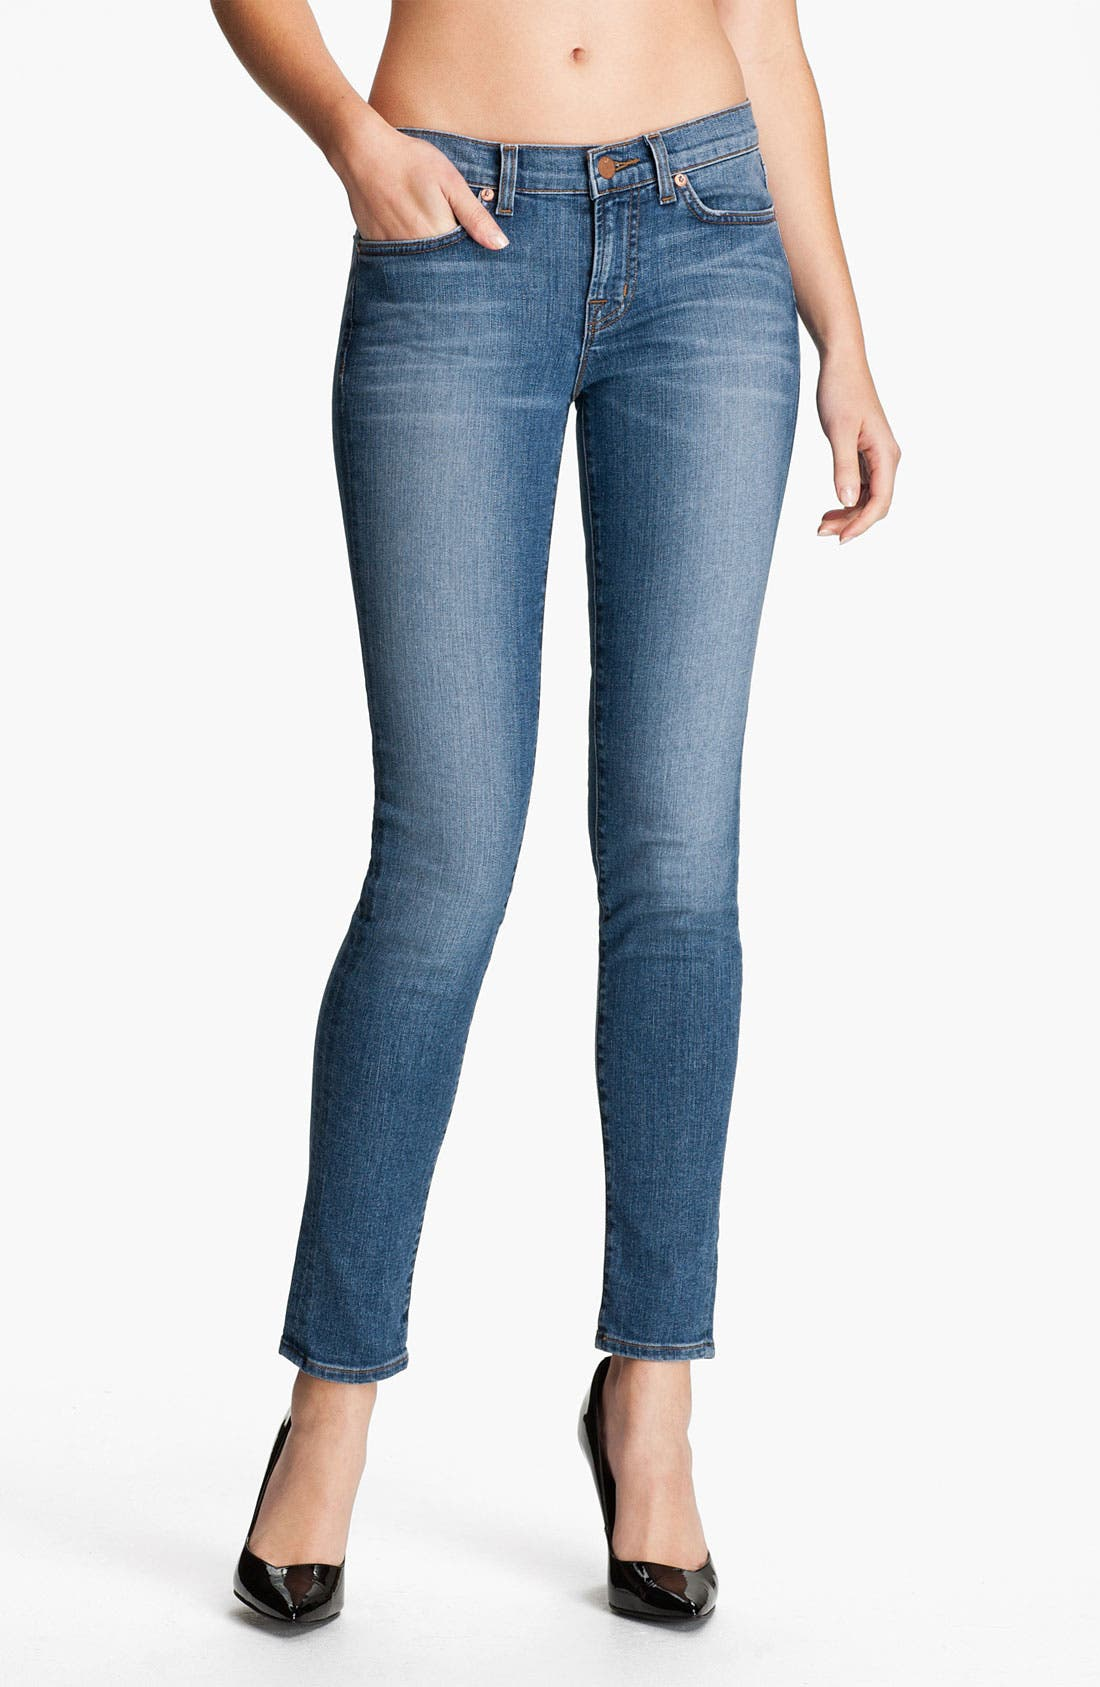 Alternate Image 1 Selected - J Brand Stretch Denim Skinny Jeans (Bliss)